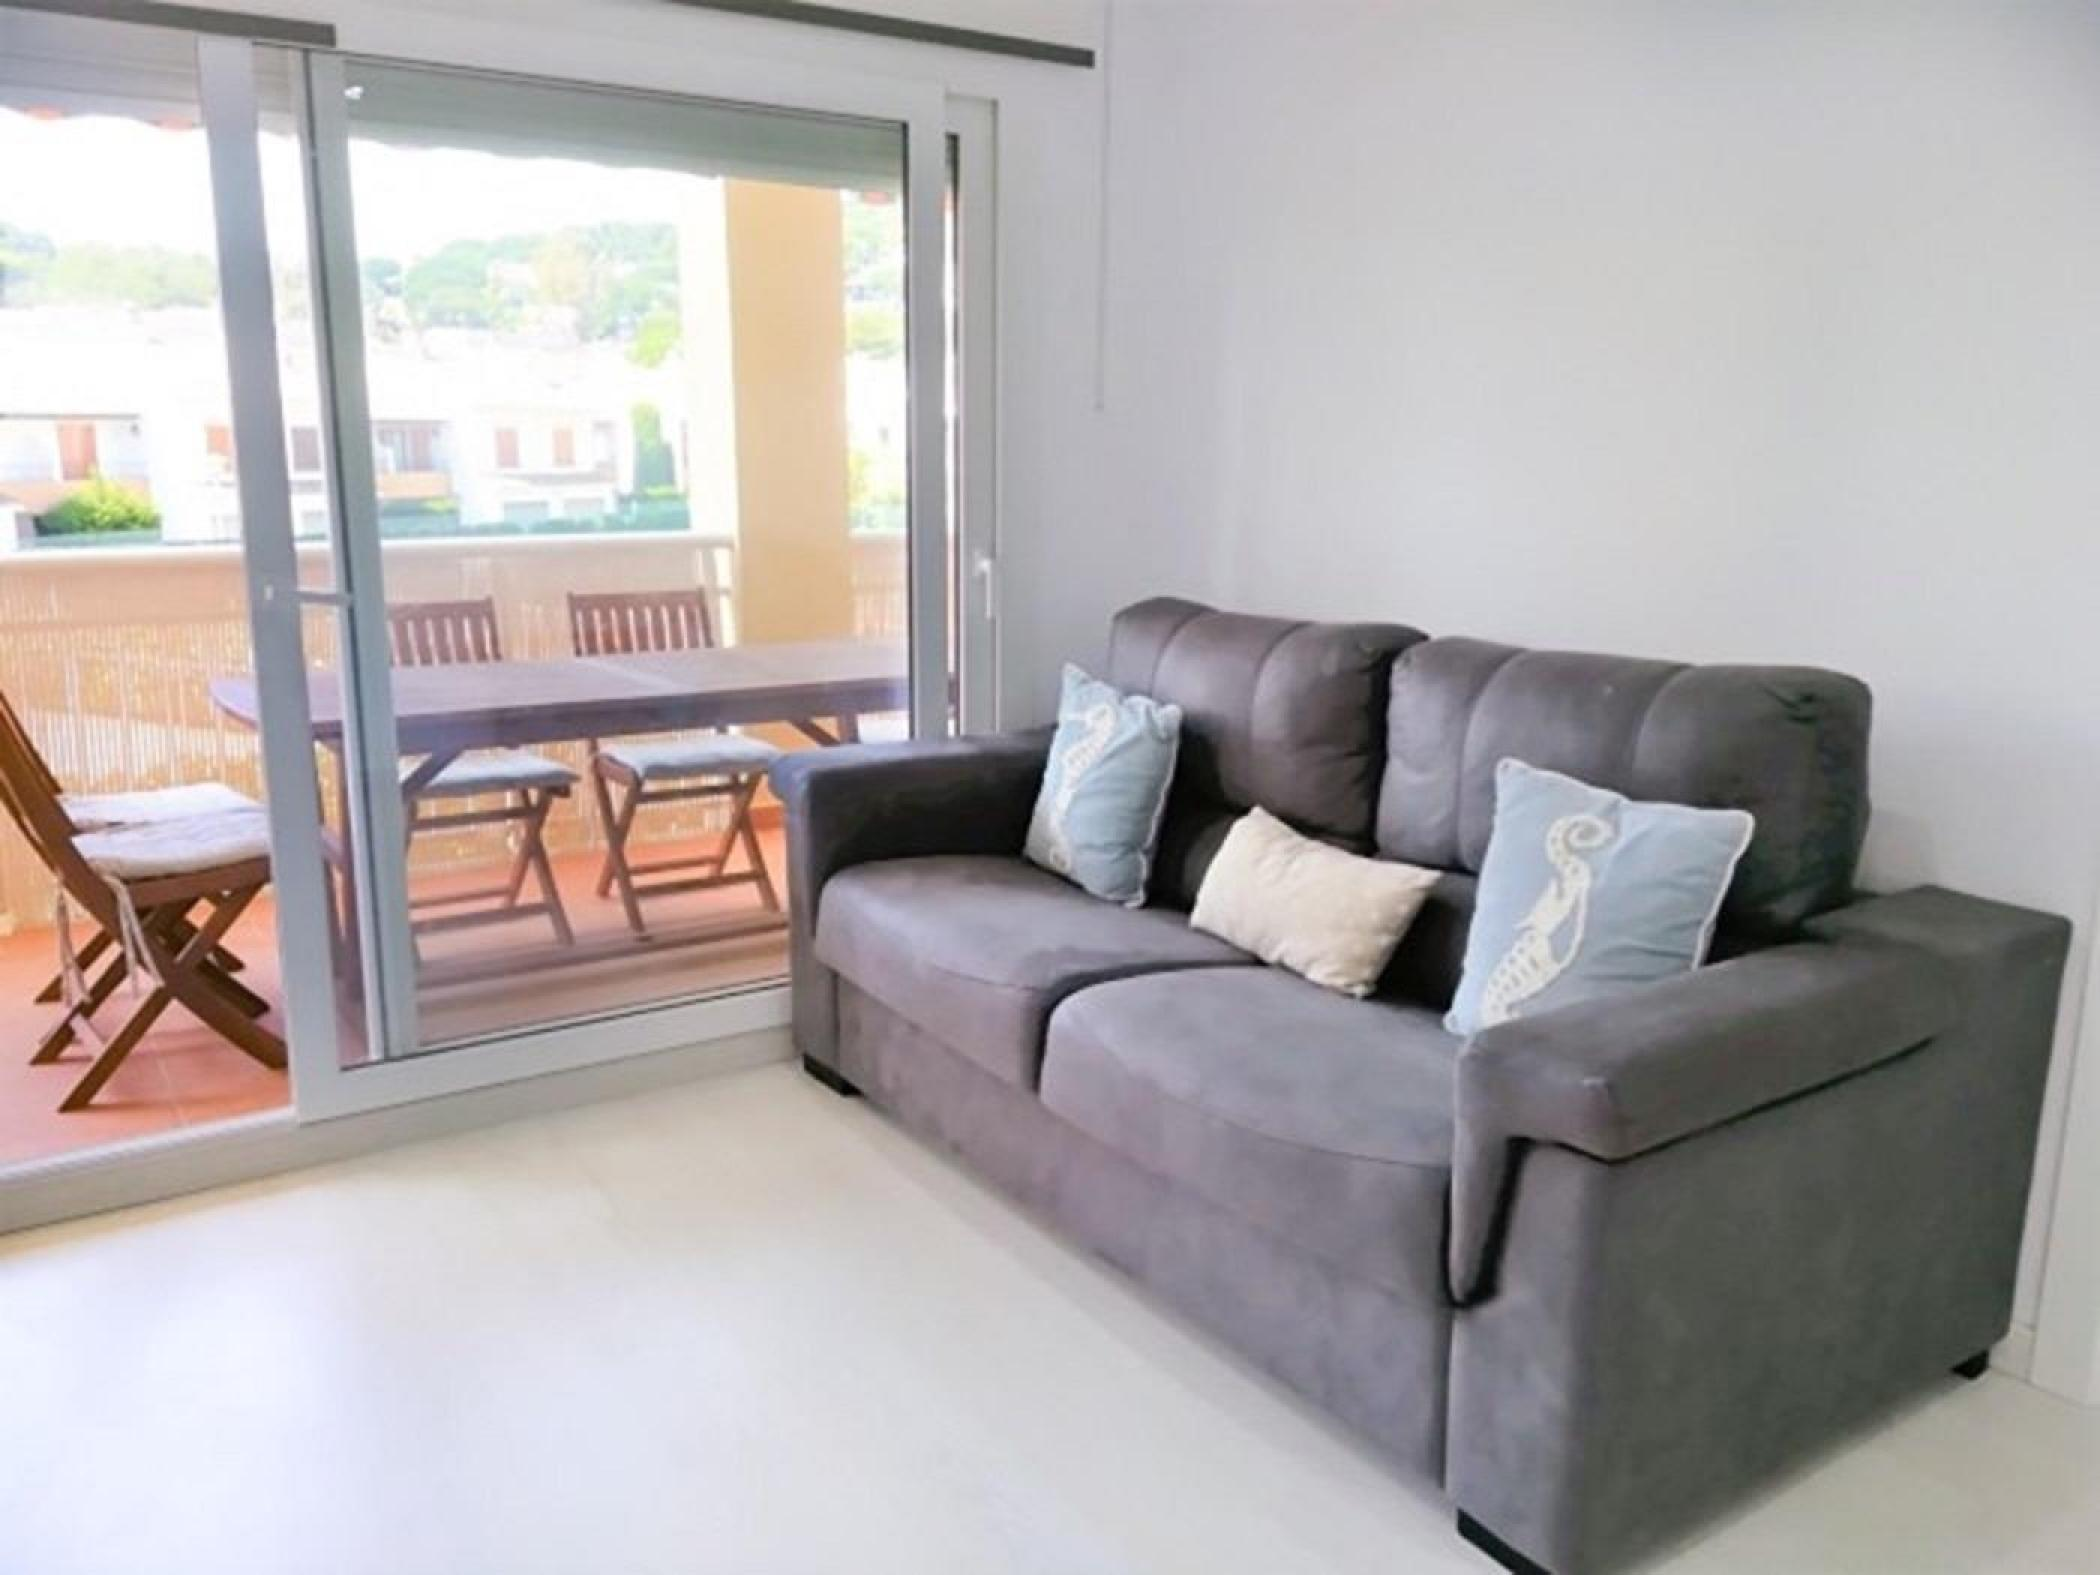 Rent Apartment with Swimming pool in Sant Antoni de Calonge - Complexe Canigó amb piscina i 1º linea de mar - 3